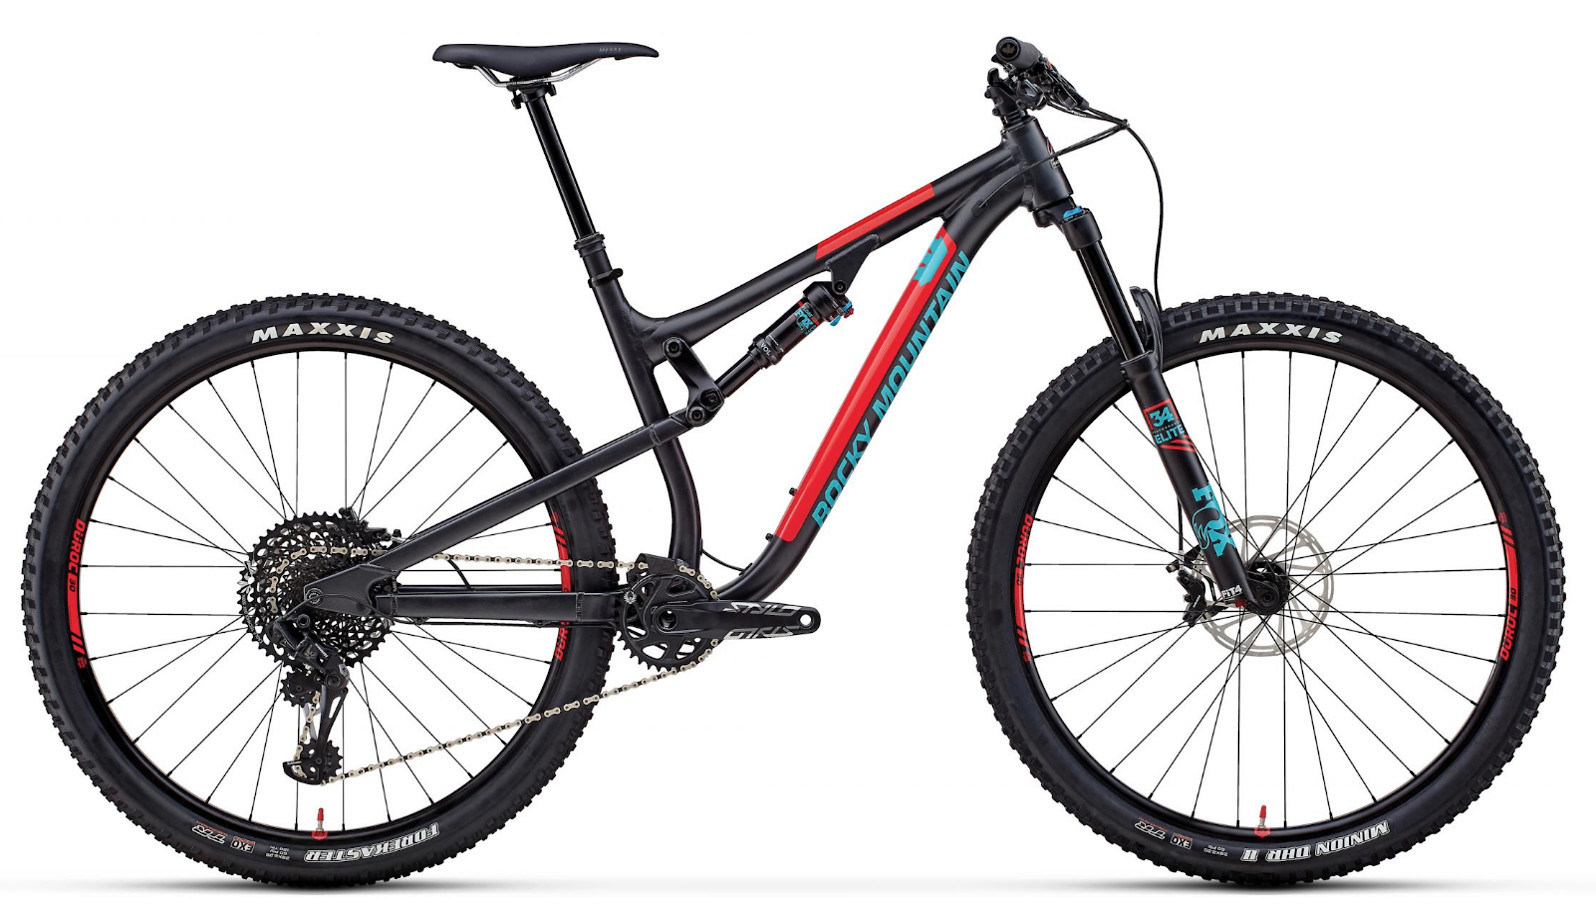 2019 Rocky Mountain Instinct Alloy 70 - Black and red